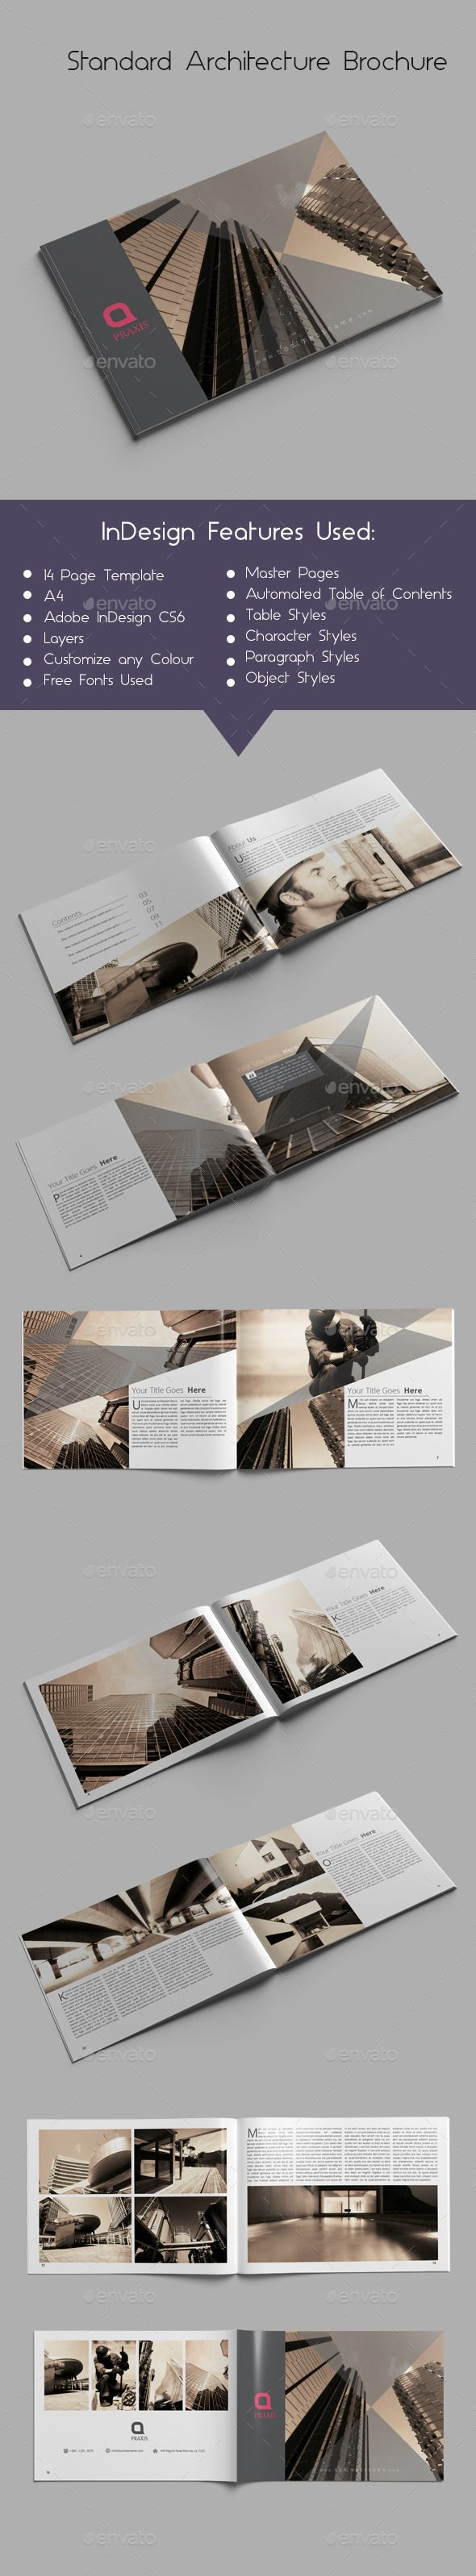 Standard Architecture Brochure Template #design Download: http://graphicriver.net/item/standard-architecture-brochure/9852707?ref=ksioks